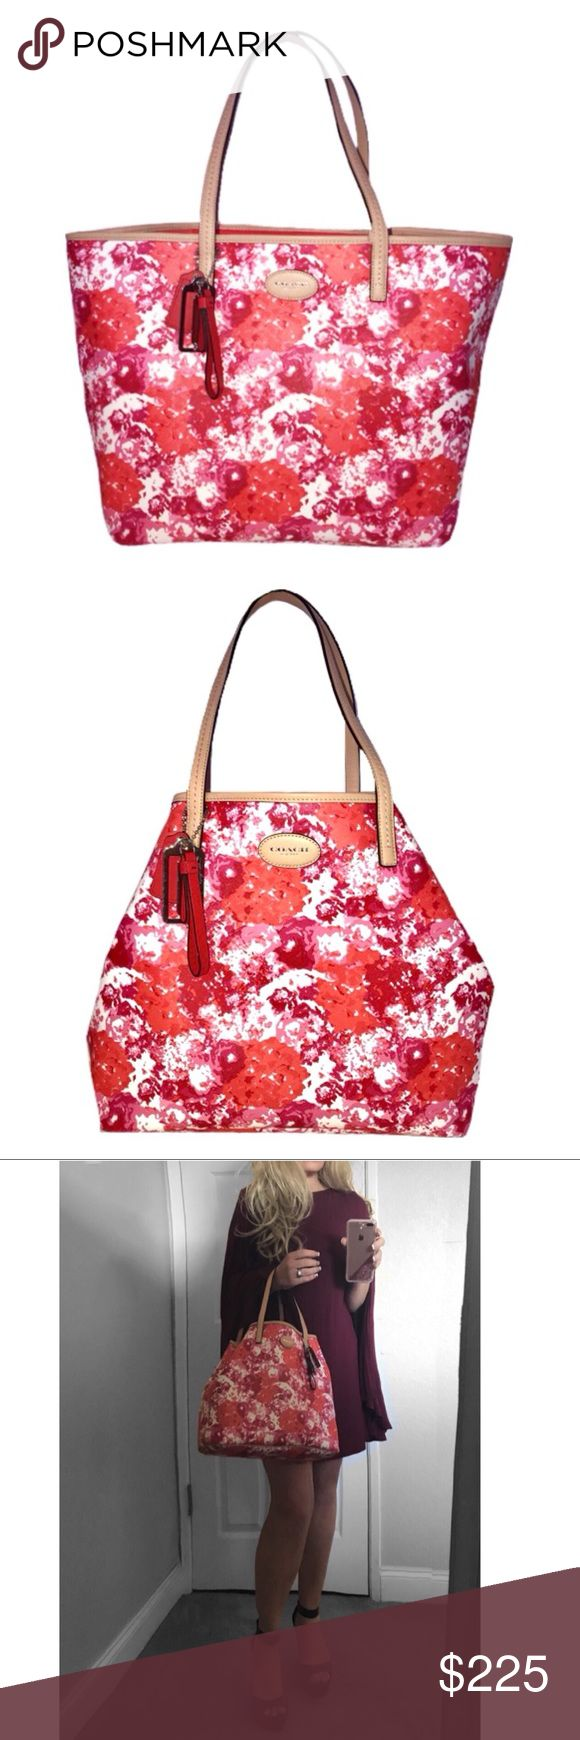 """NWT Coach Metro Floral Print Tote • Spring floral print canvas with leather trim  • Inside zip, cell phone and multifunction pockets  • Handles with 7 3/4"""" drop Keep your spring look classic and sophisticated with this authentic stylish Coach Metro Print Tote. Constructed with the finest material and meticulous craftsmanship, this ultra-fashionable bag helps keep you organized while you look your best. Color: Red/Pink/Orange Floral Print   •Coach Bag Registration No.  #coach #coachbag…"""